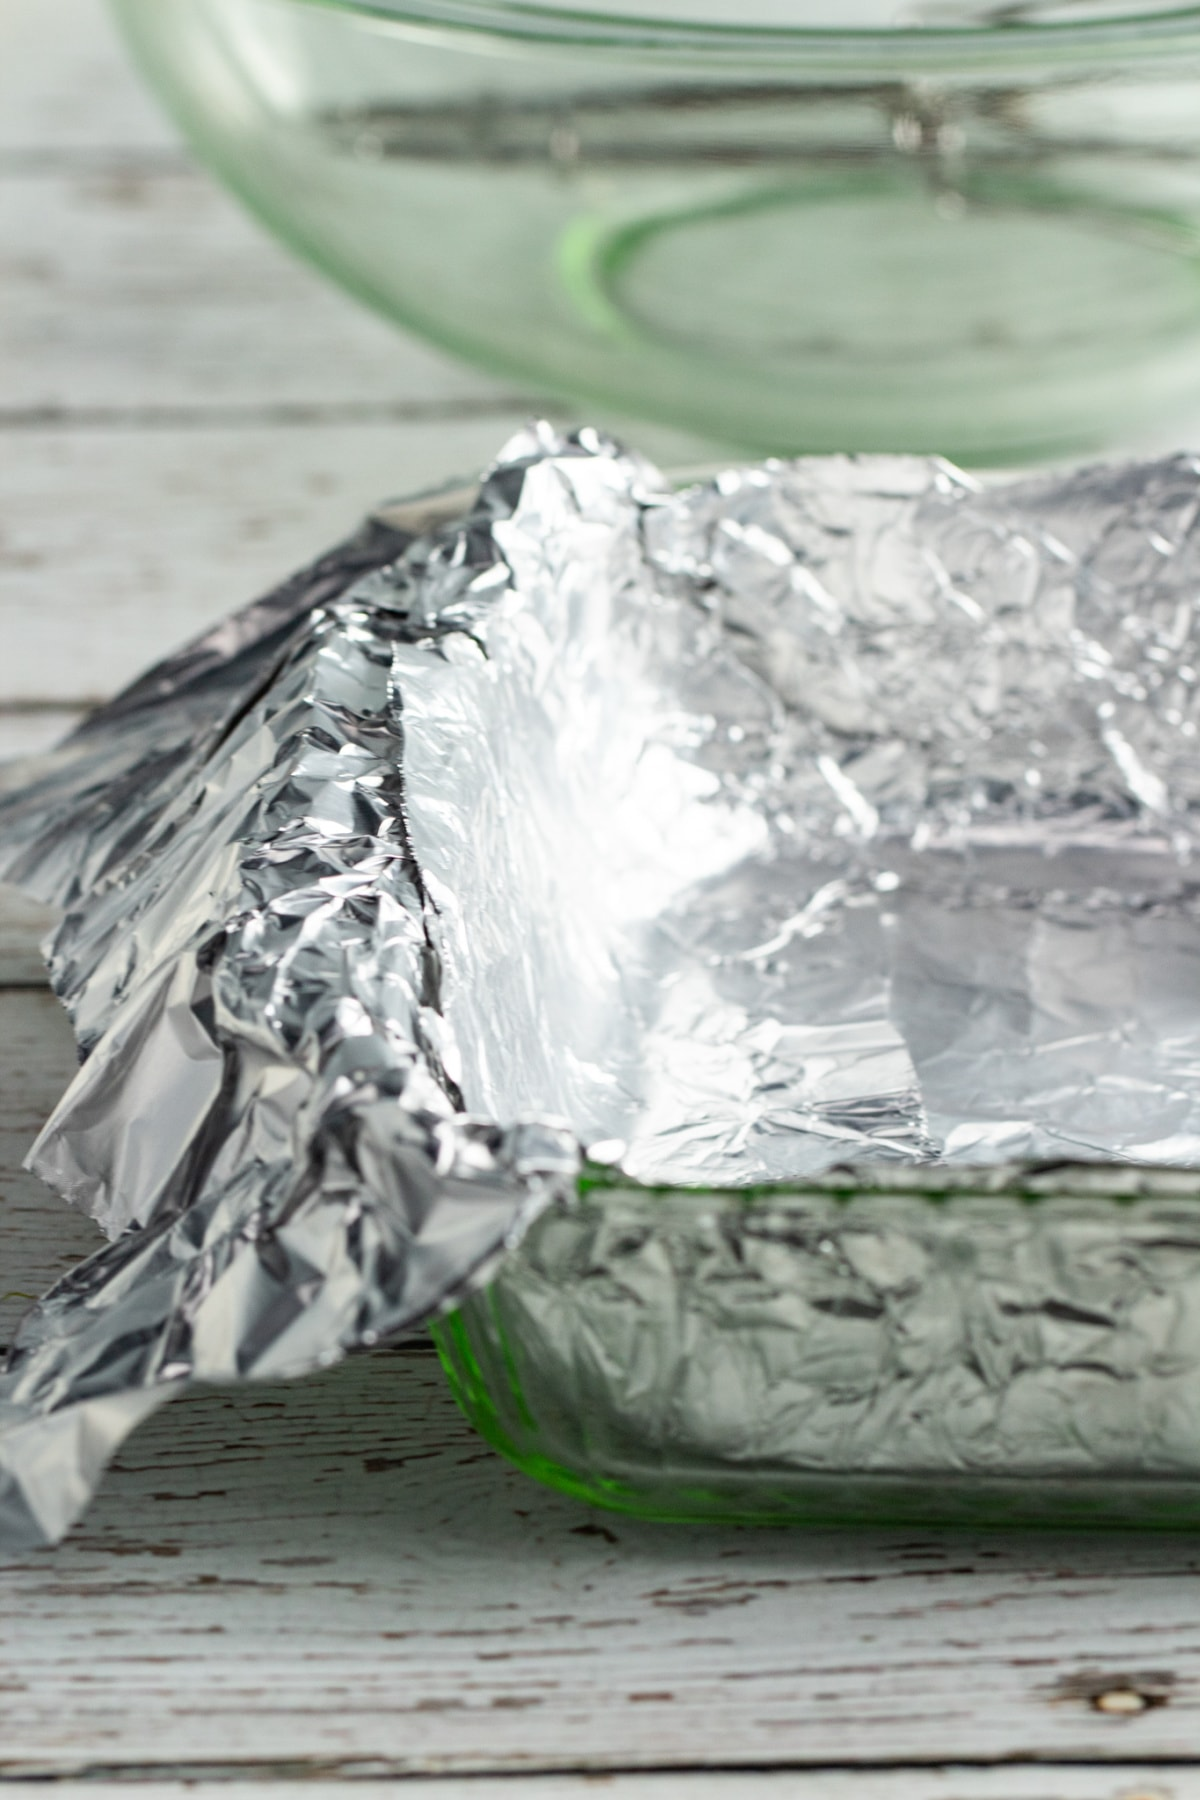 9-inch baking pan with foil